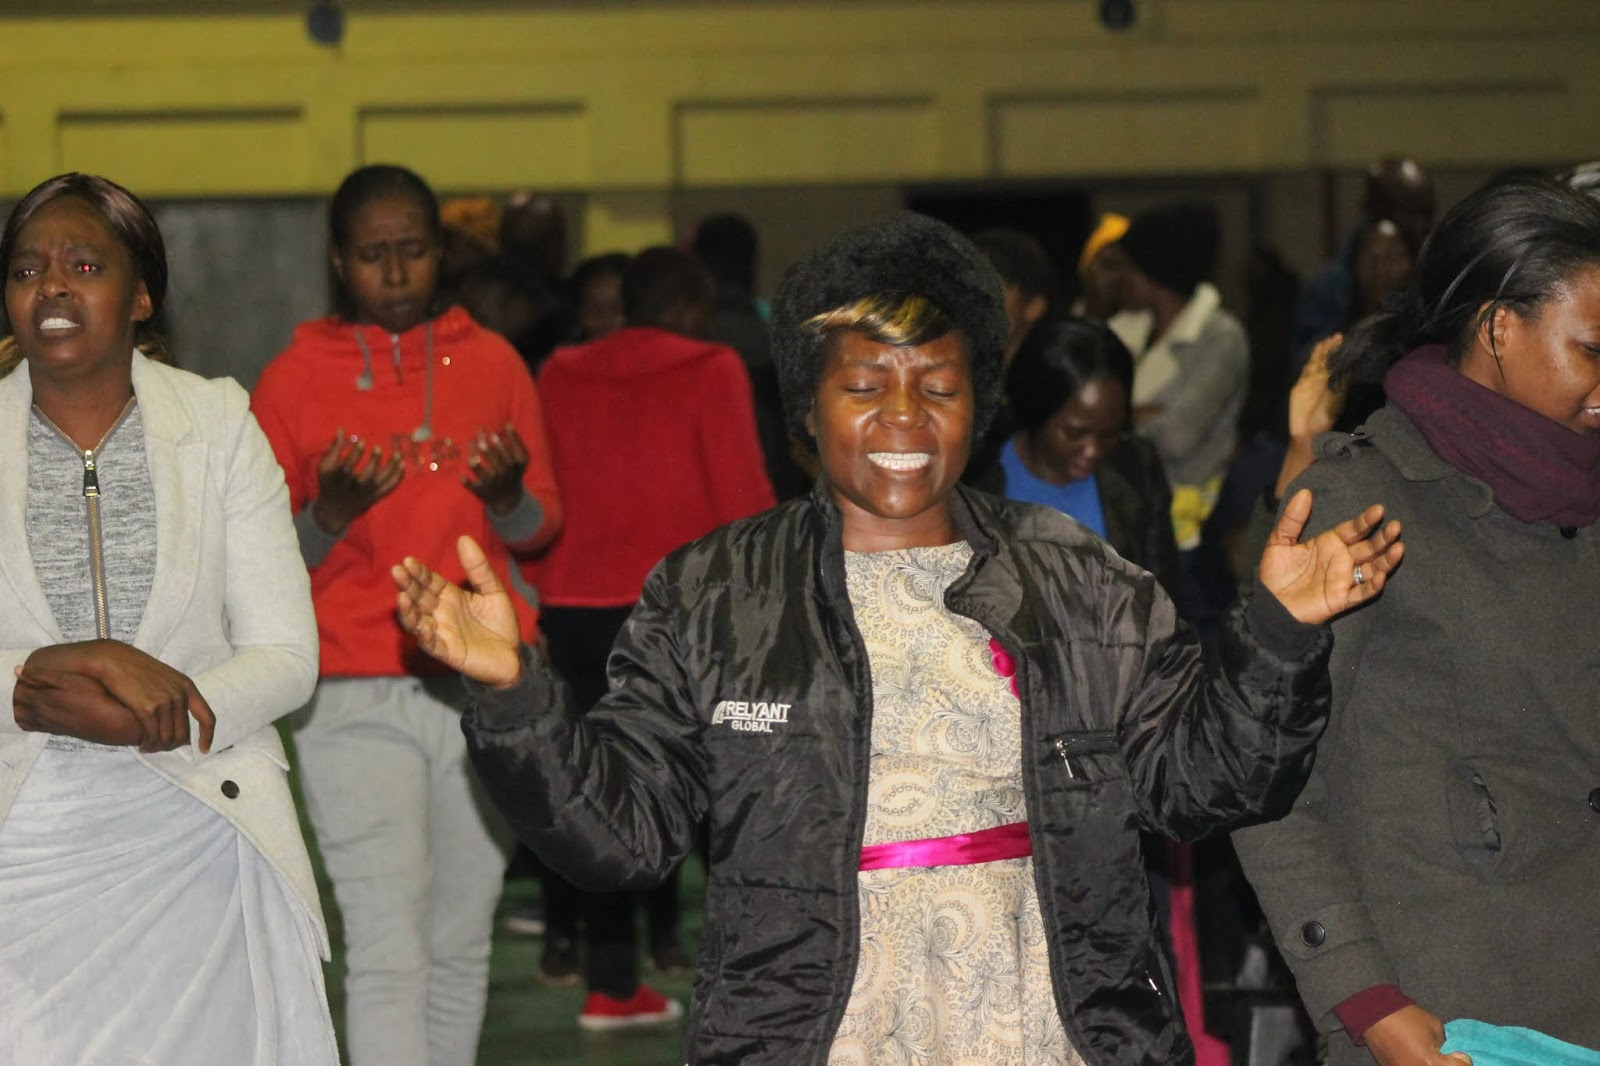 Deliverance All-Night Concludes On A High Note - Apostle P. Sibiya Deals Heavy Blow To Satanic Kingdom!